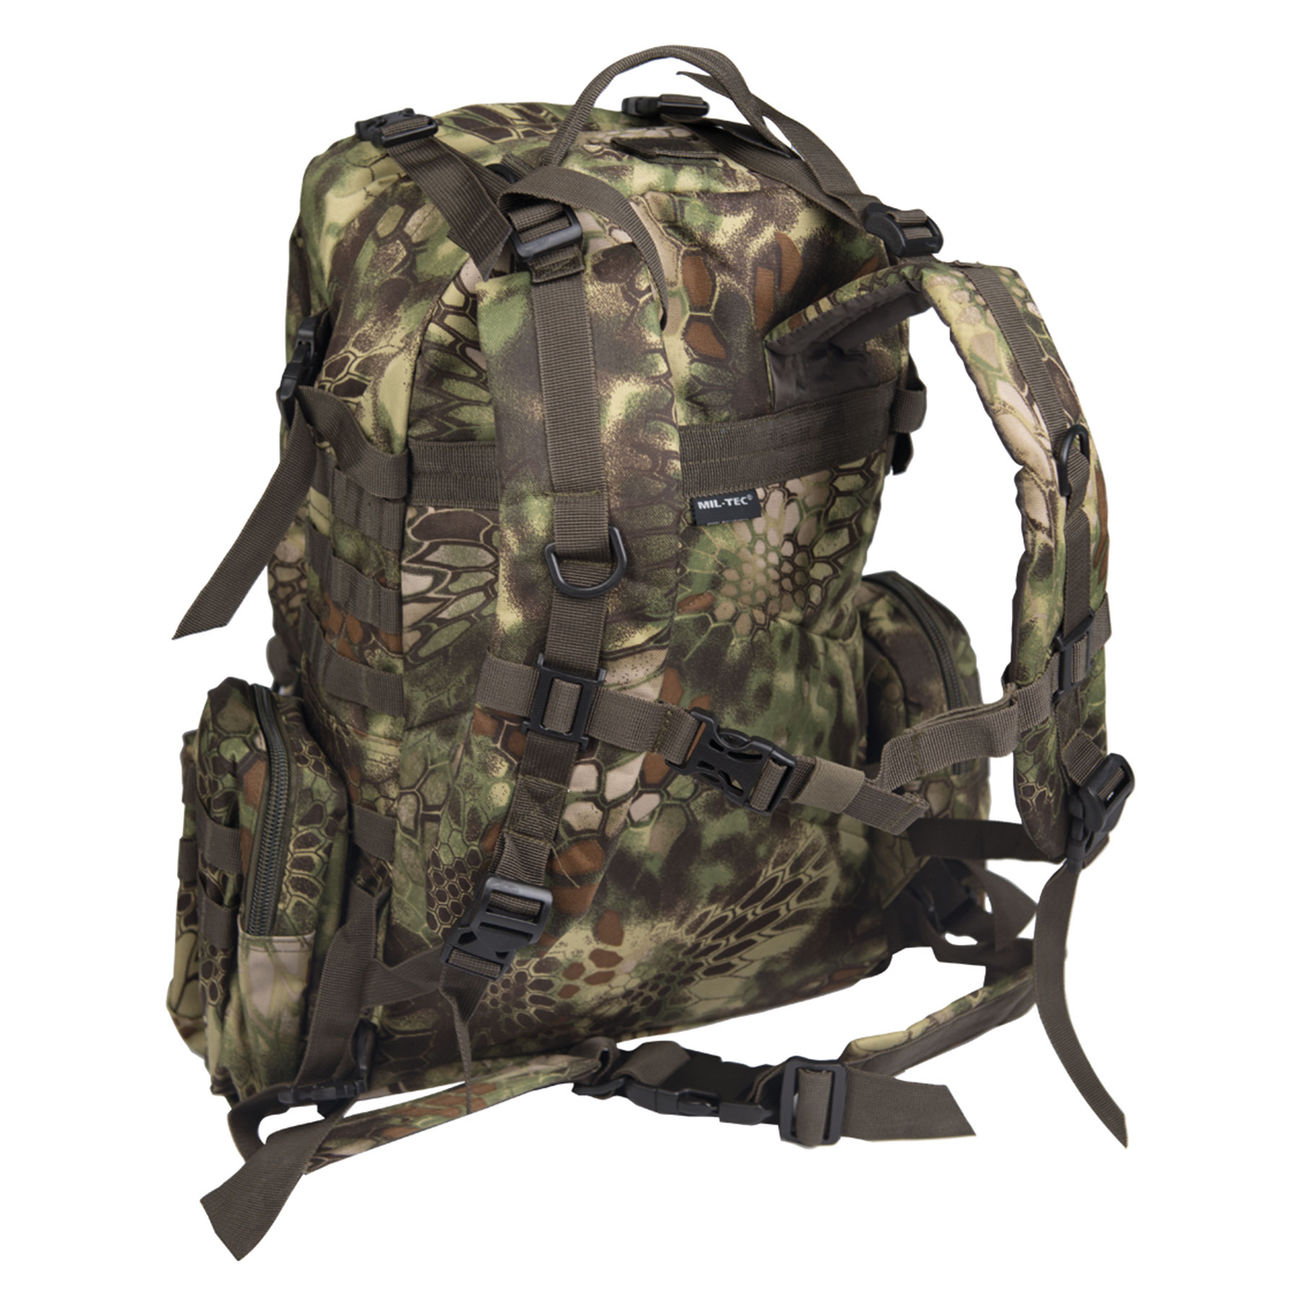 Mil-Tec Rucksack Defense Pack Assembly 36 ltr. mandra wood 1